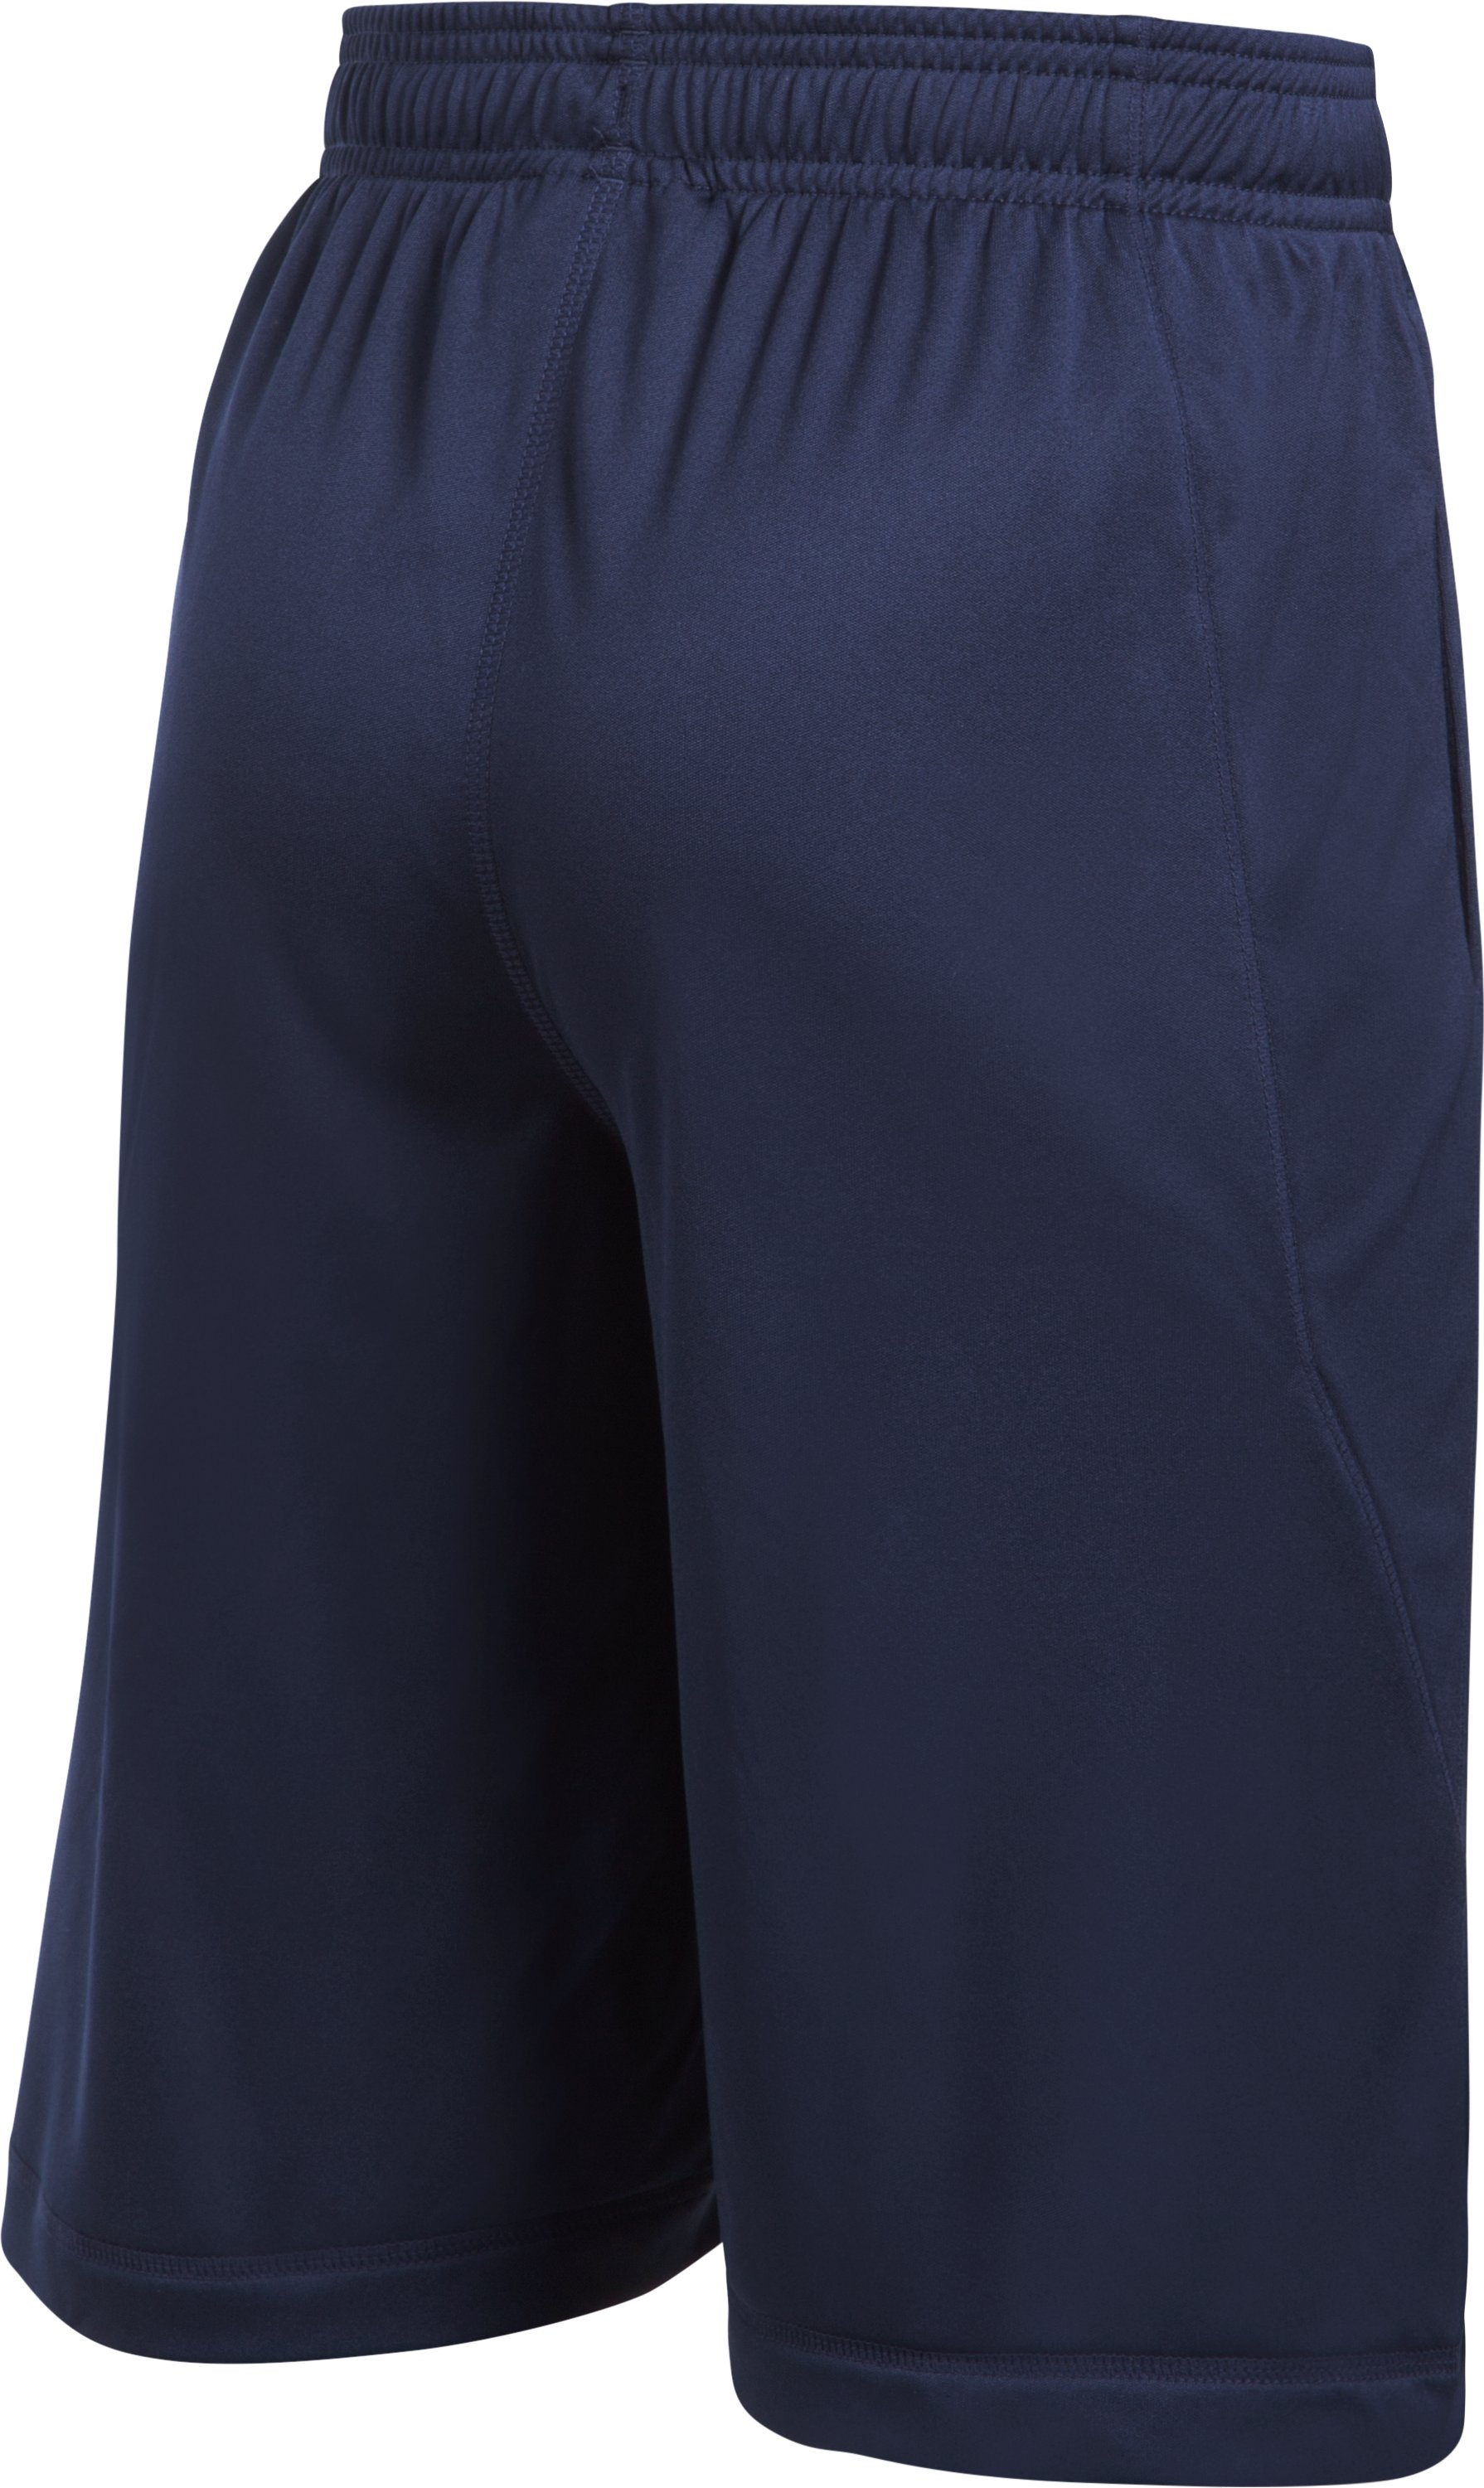 Boys' Boston Red Sox Training Shorts, Midnight Navy, undefined